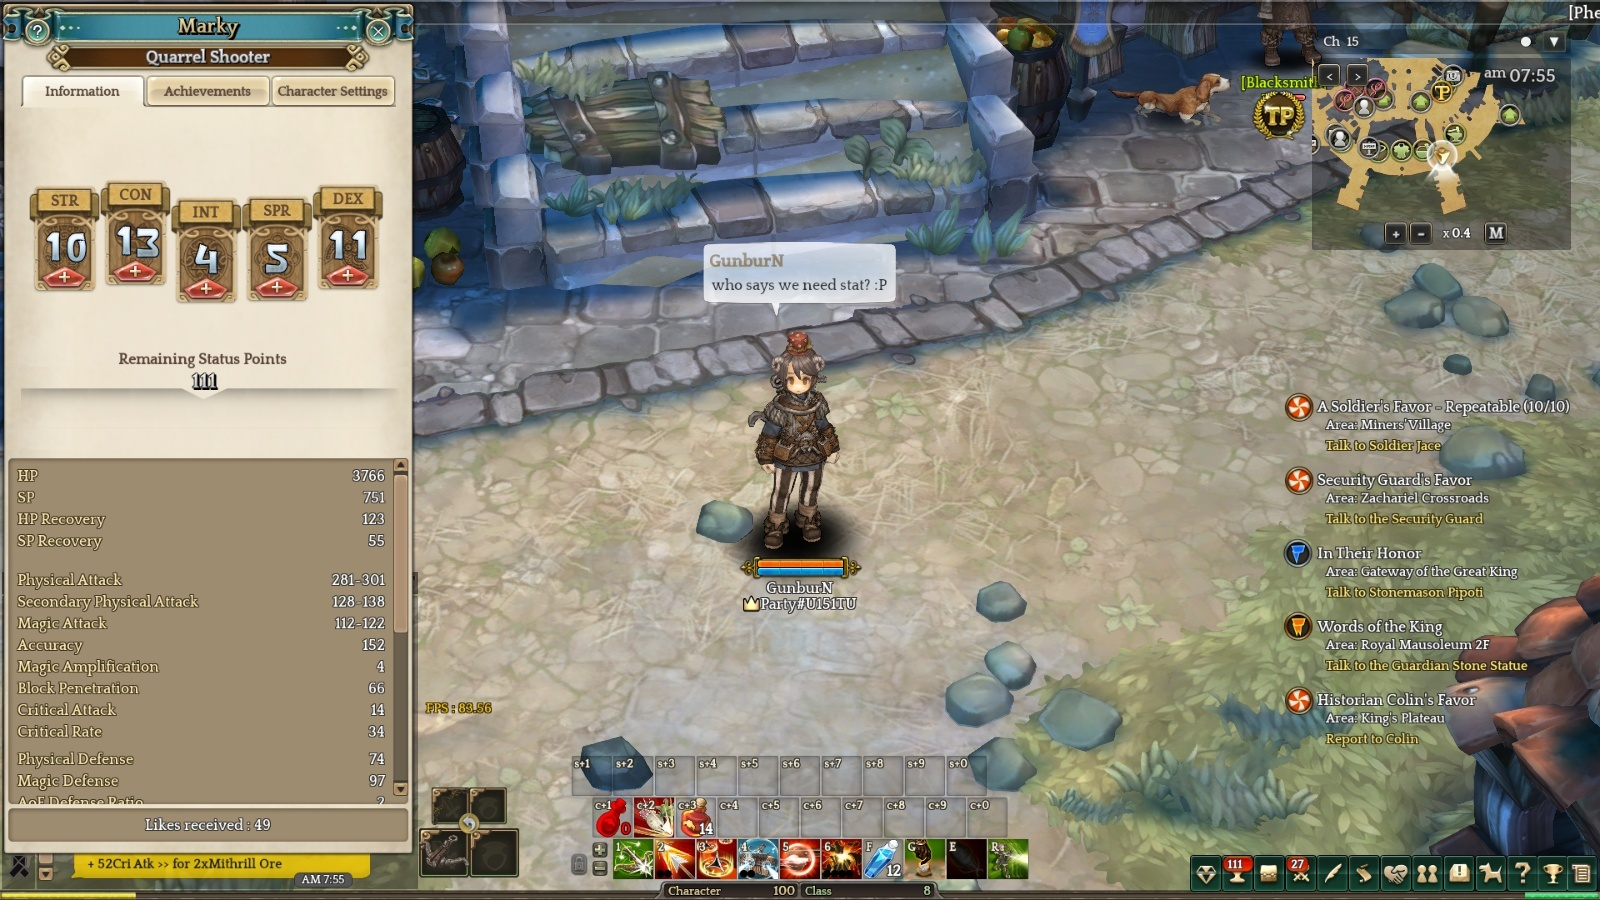 Best Archer Build Tree Of Savior